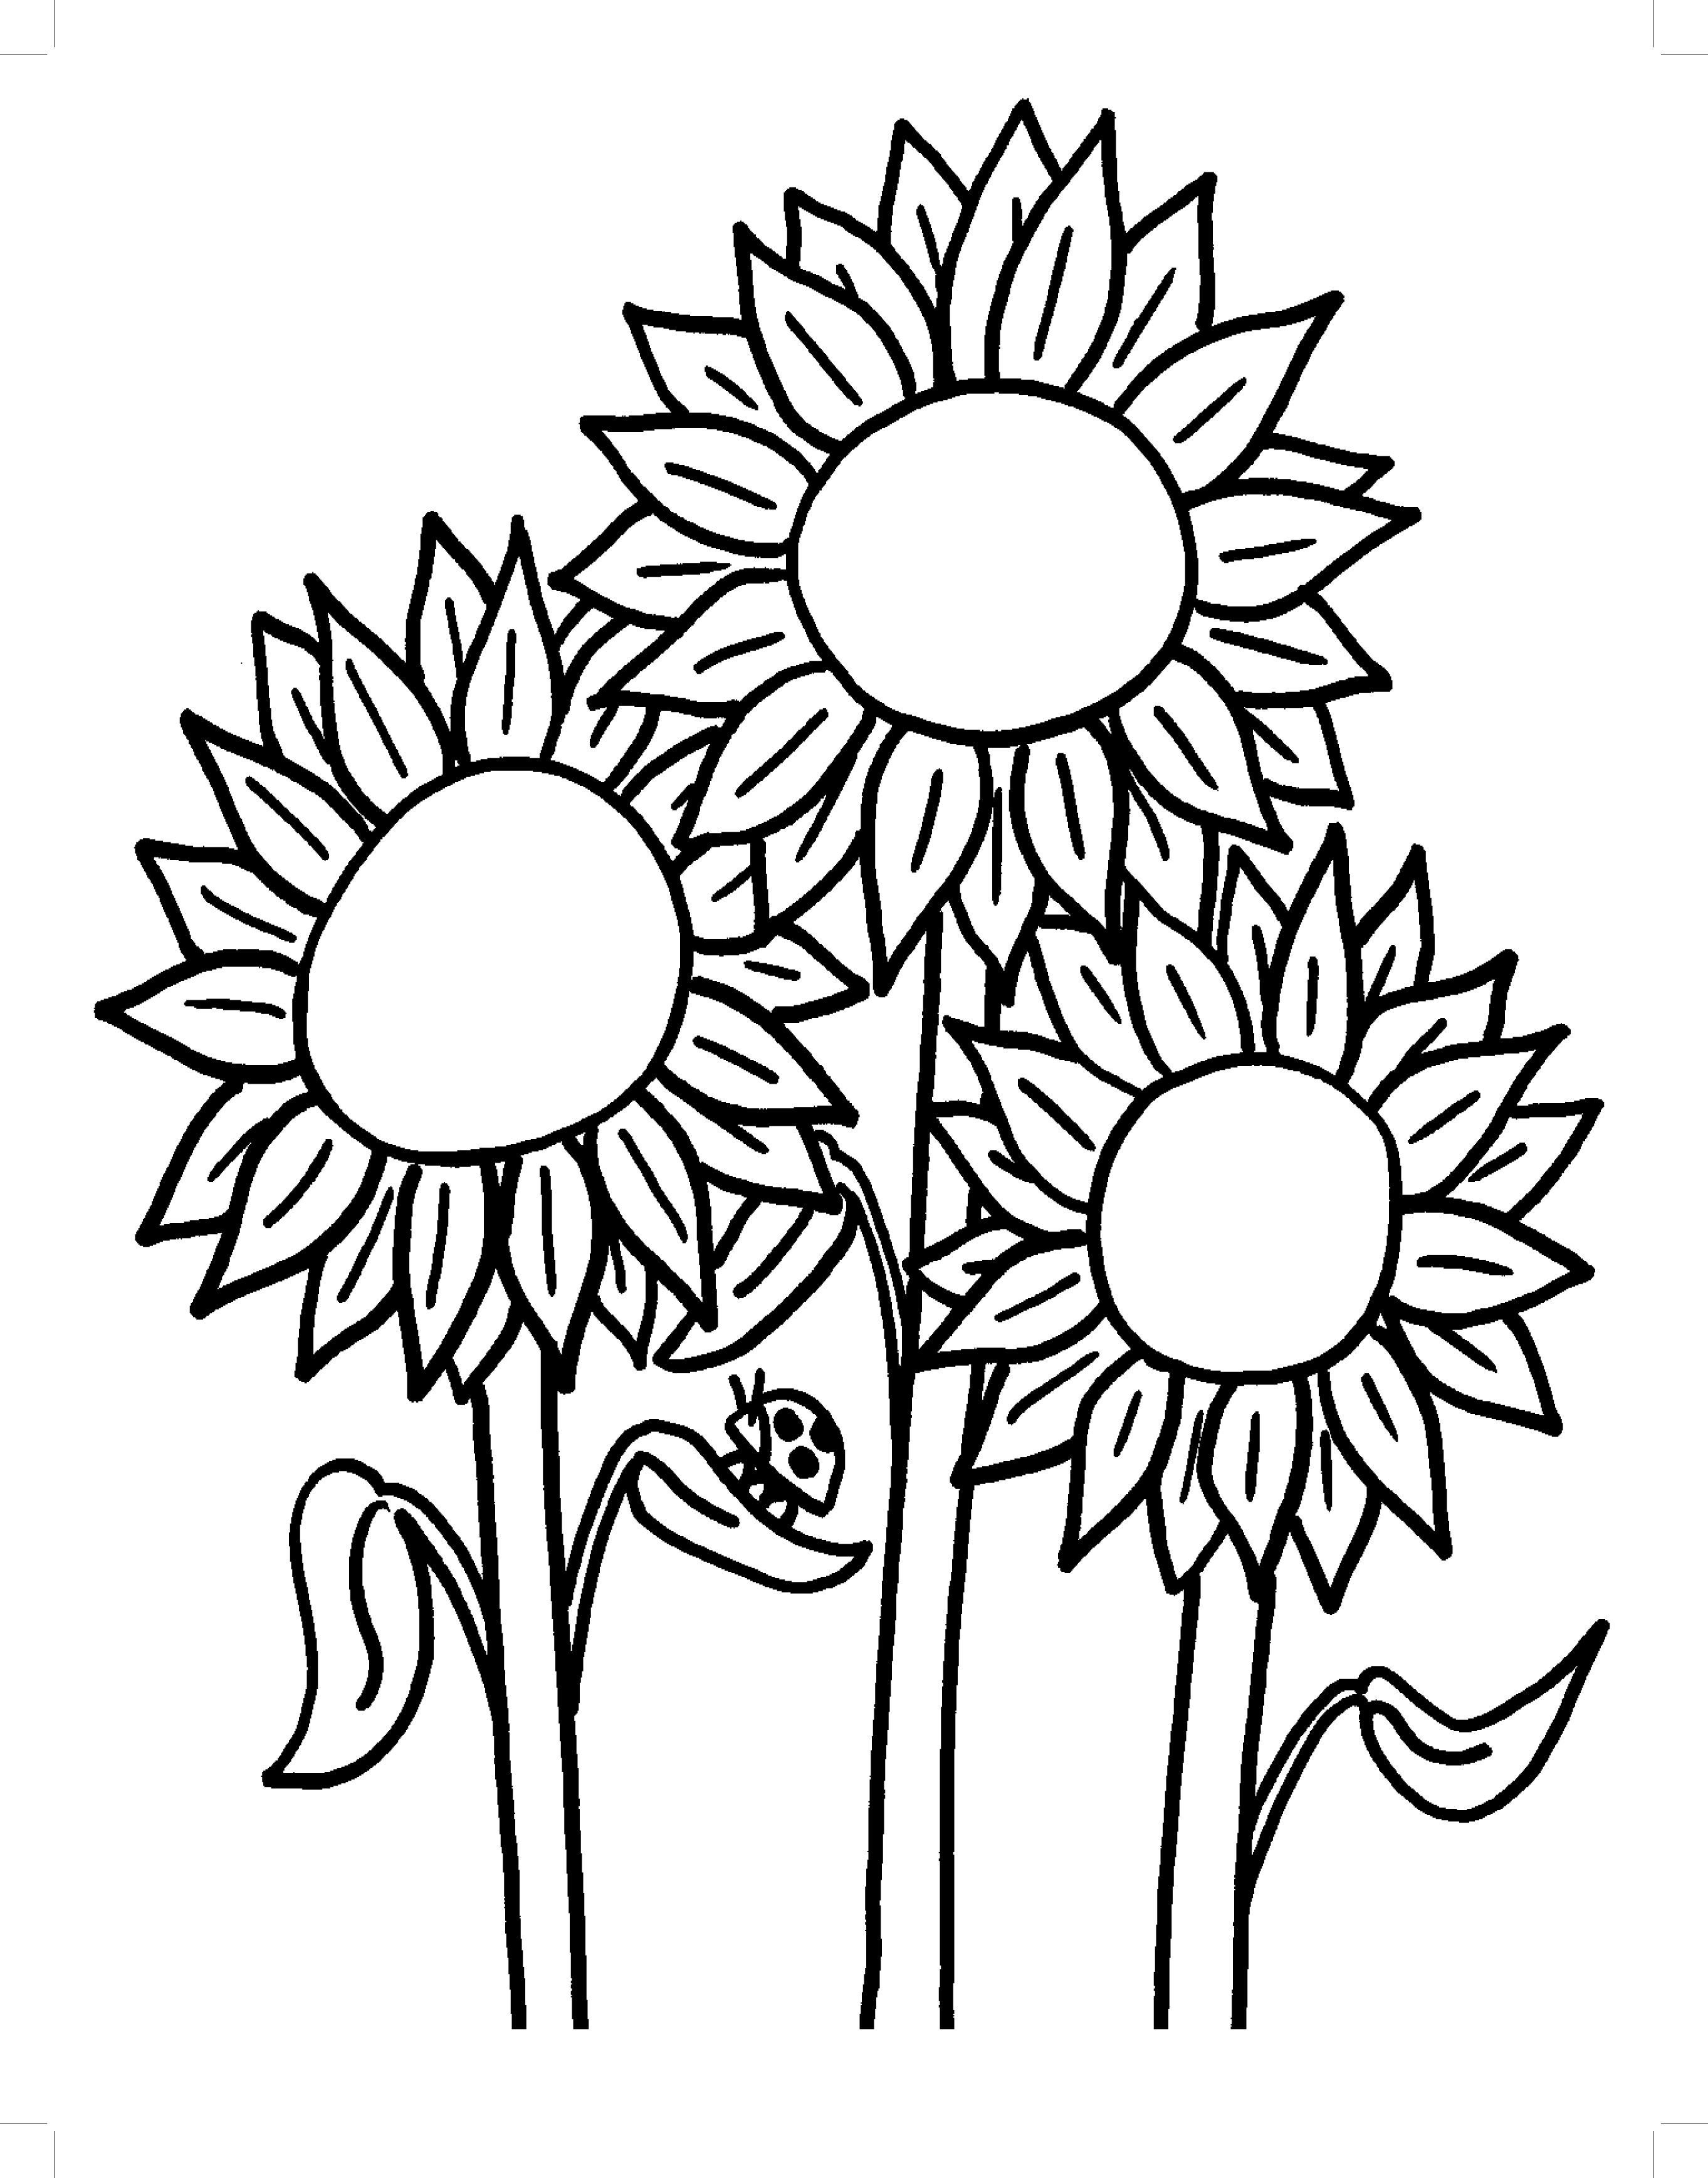 coloring pictures of sunflowers 15 beautiful sunflower coloring pages for your little girl pictures sunflowers of coloring